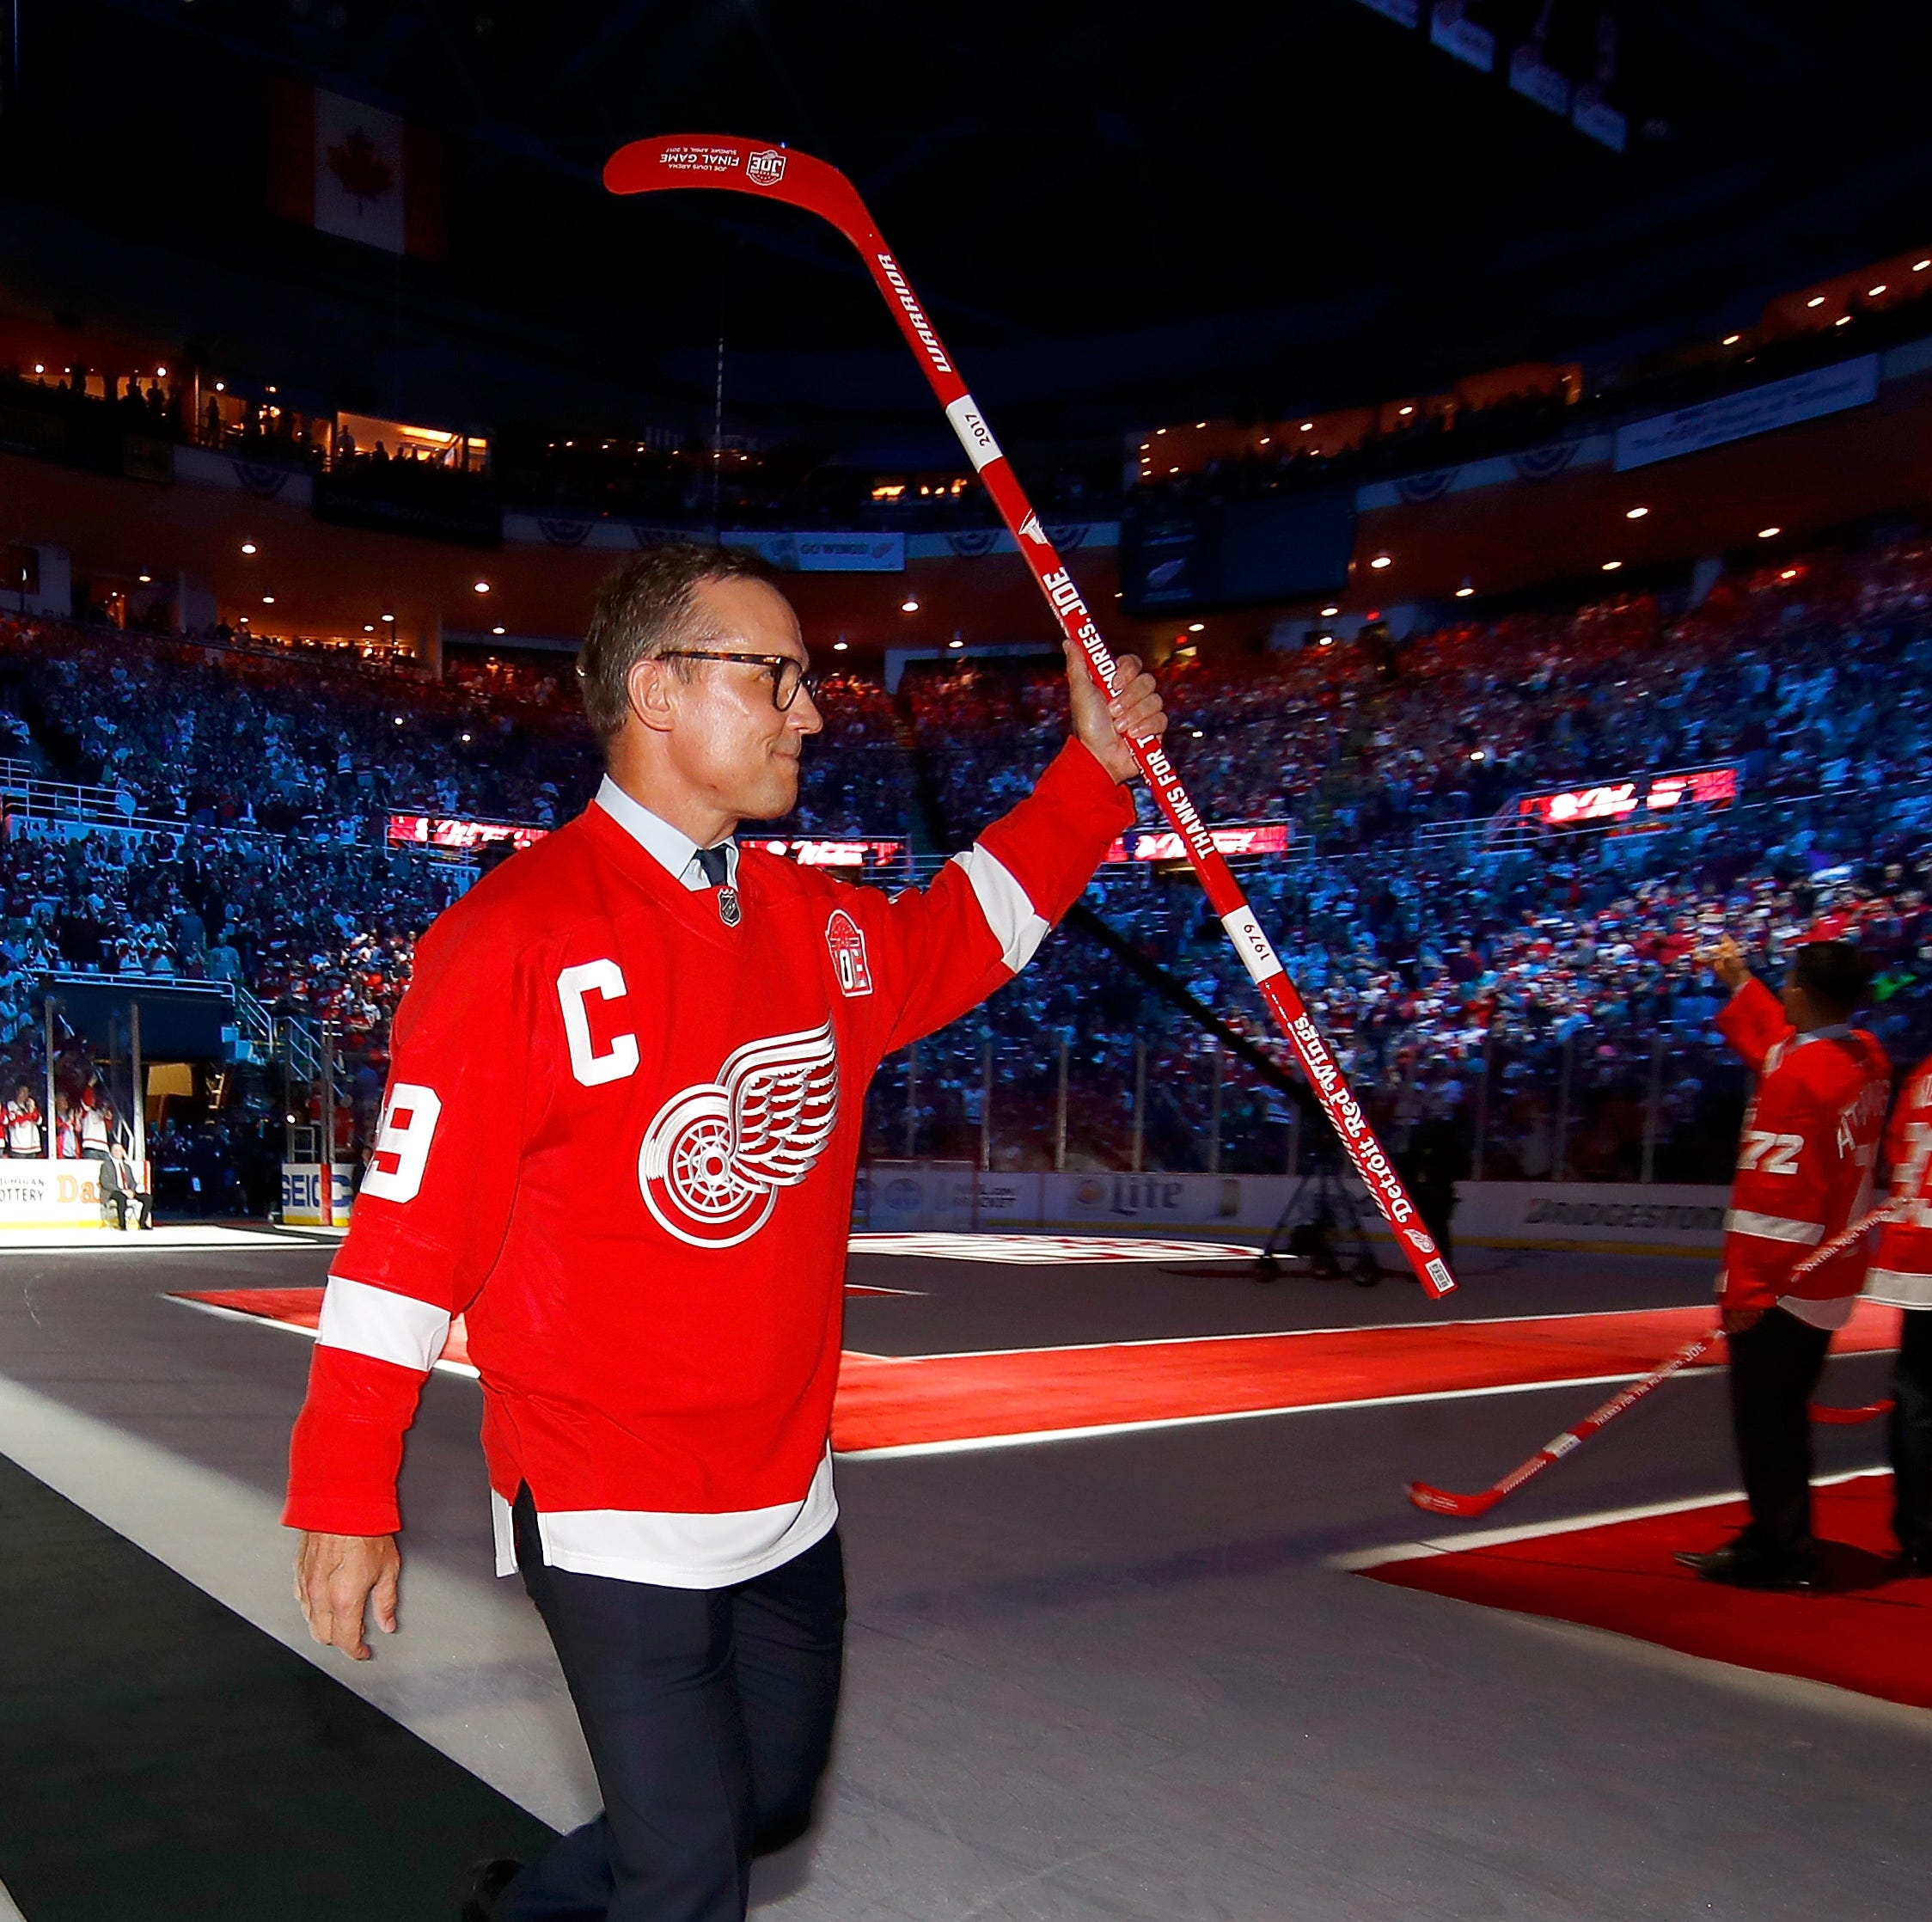 Steve Yzerman to be named Detroit Red Wings GM, will replace Ken Holland